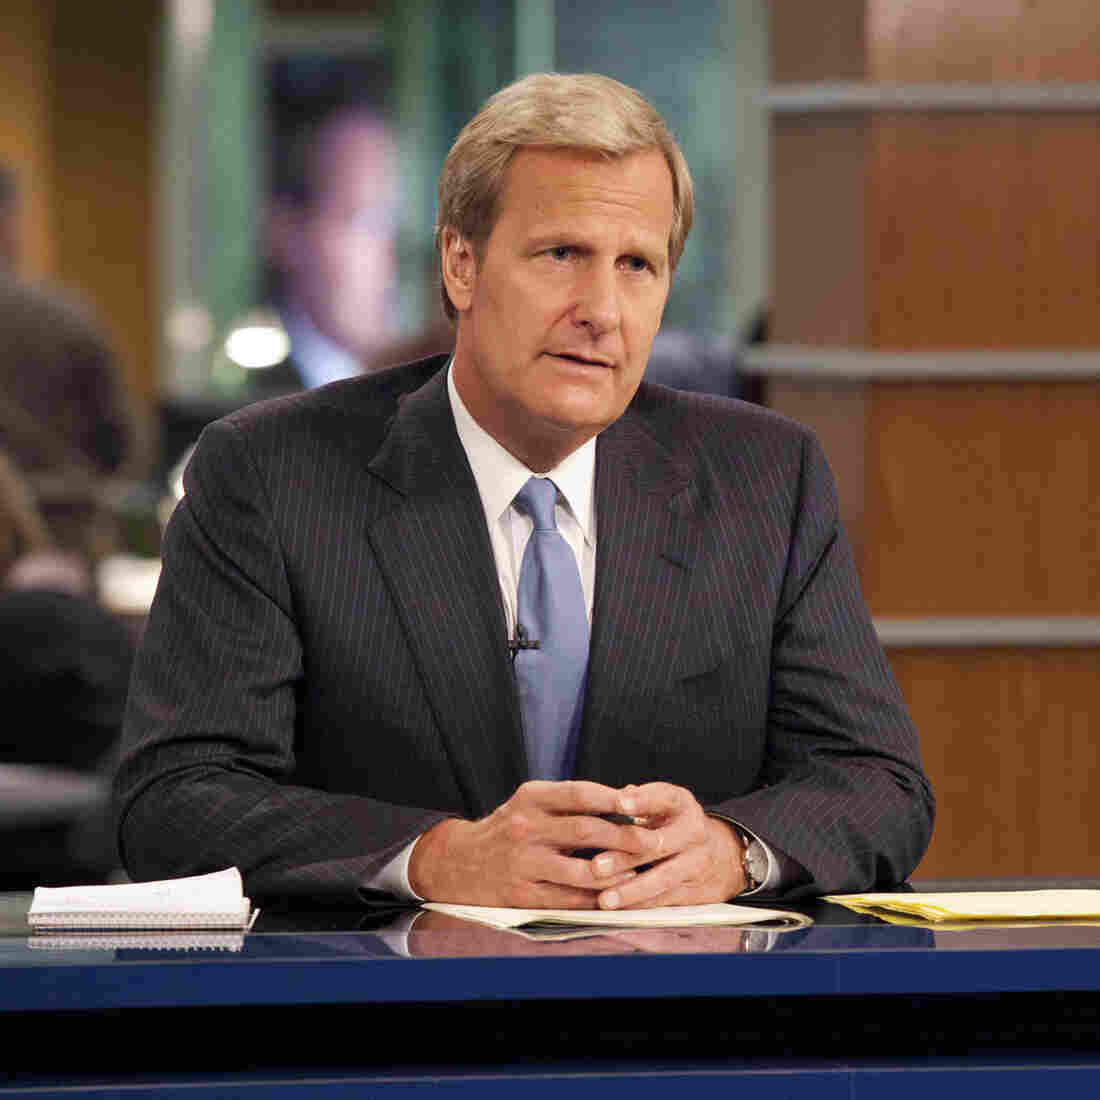 Jeff Daniels: Anchoring The Cast Of 'The Newsroom'